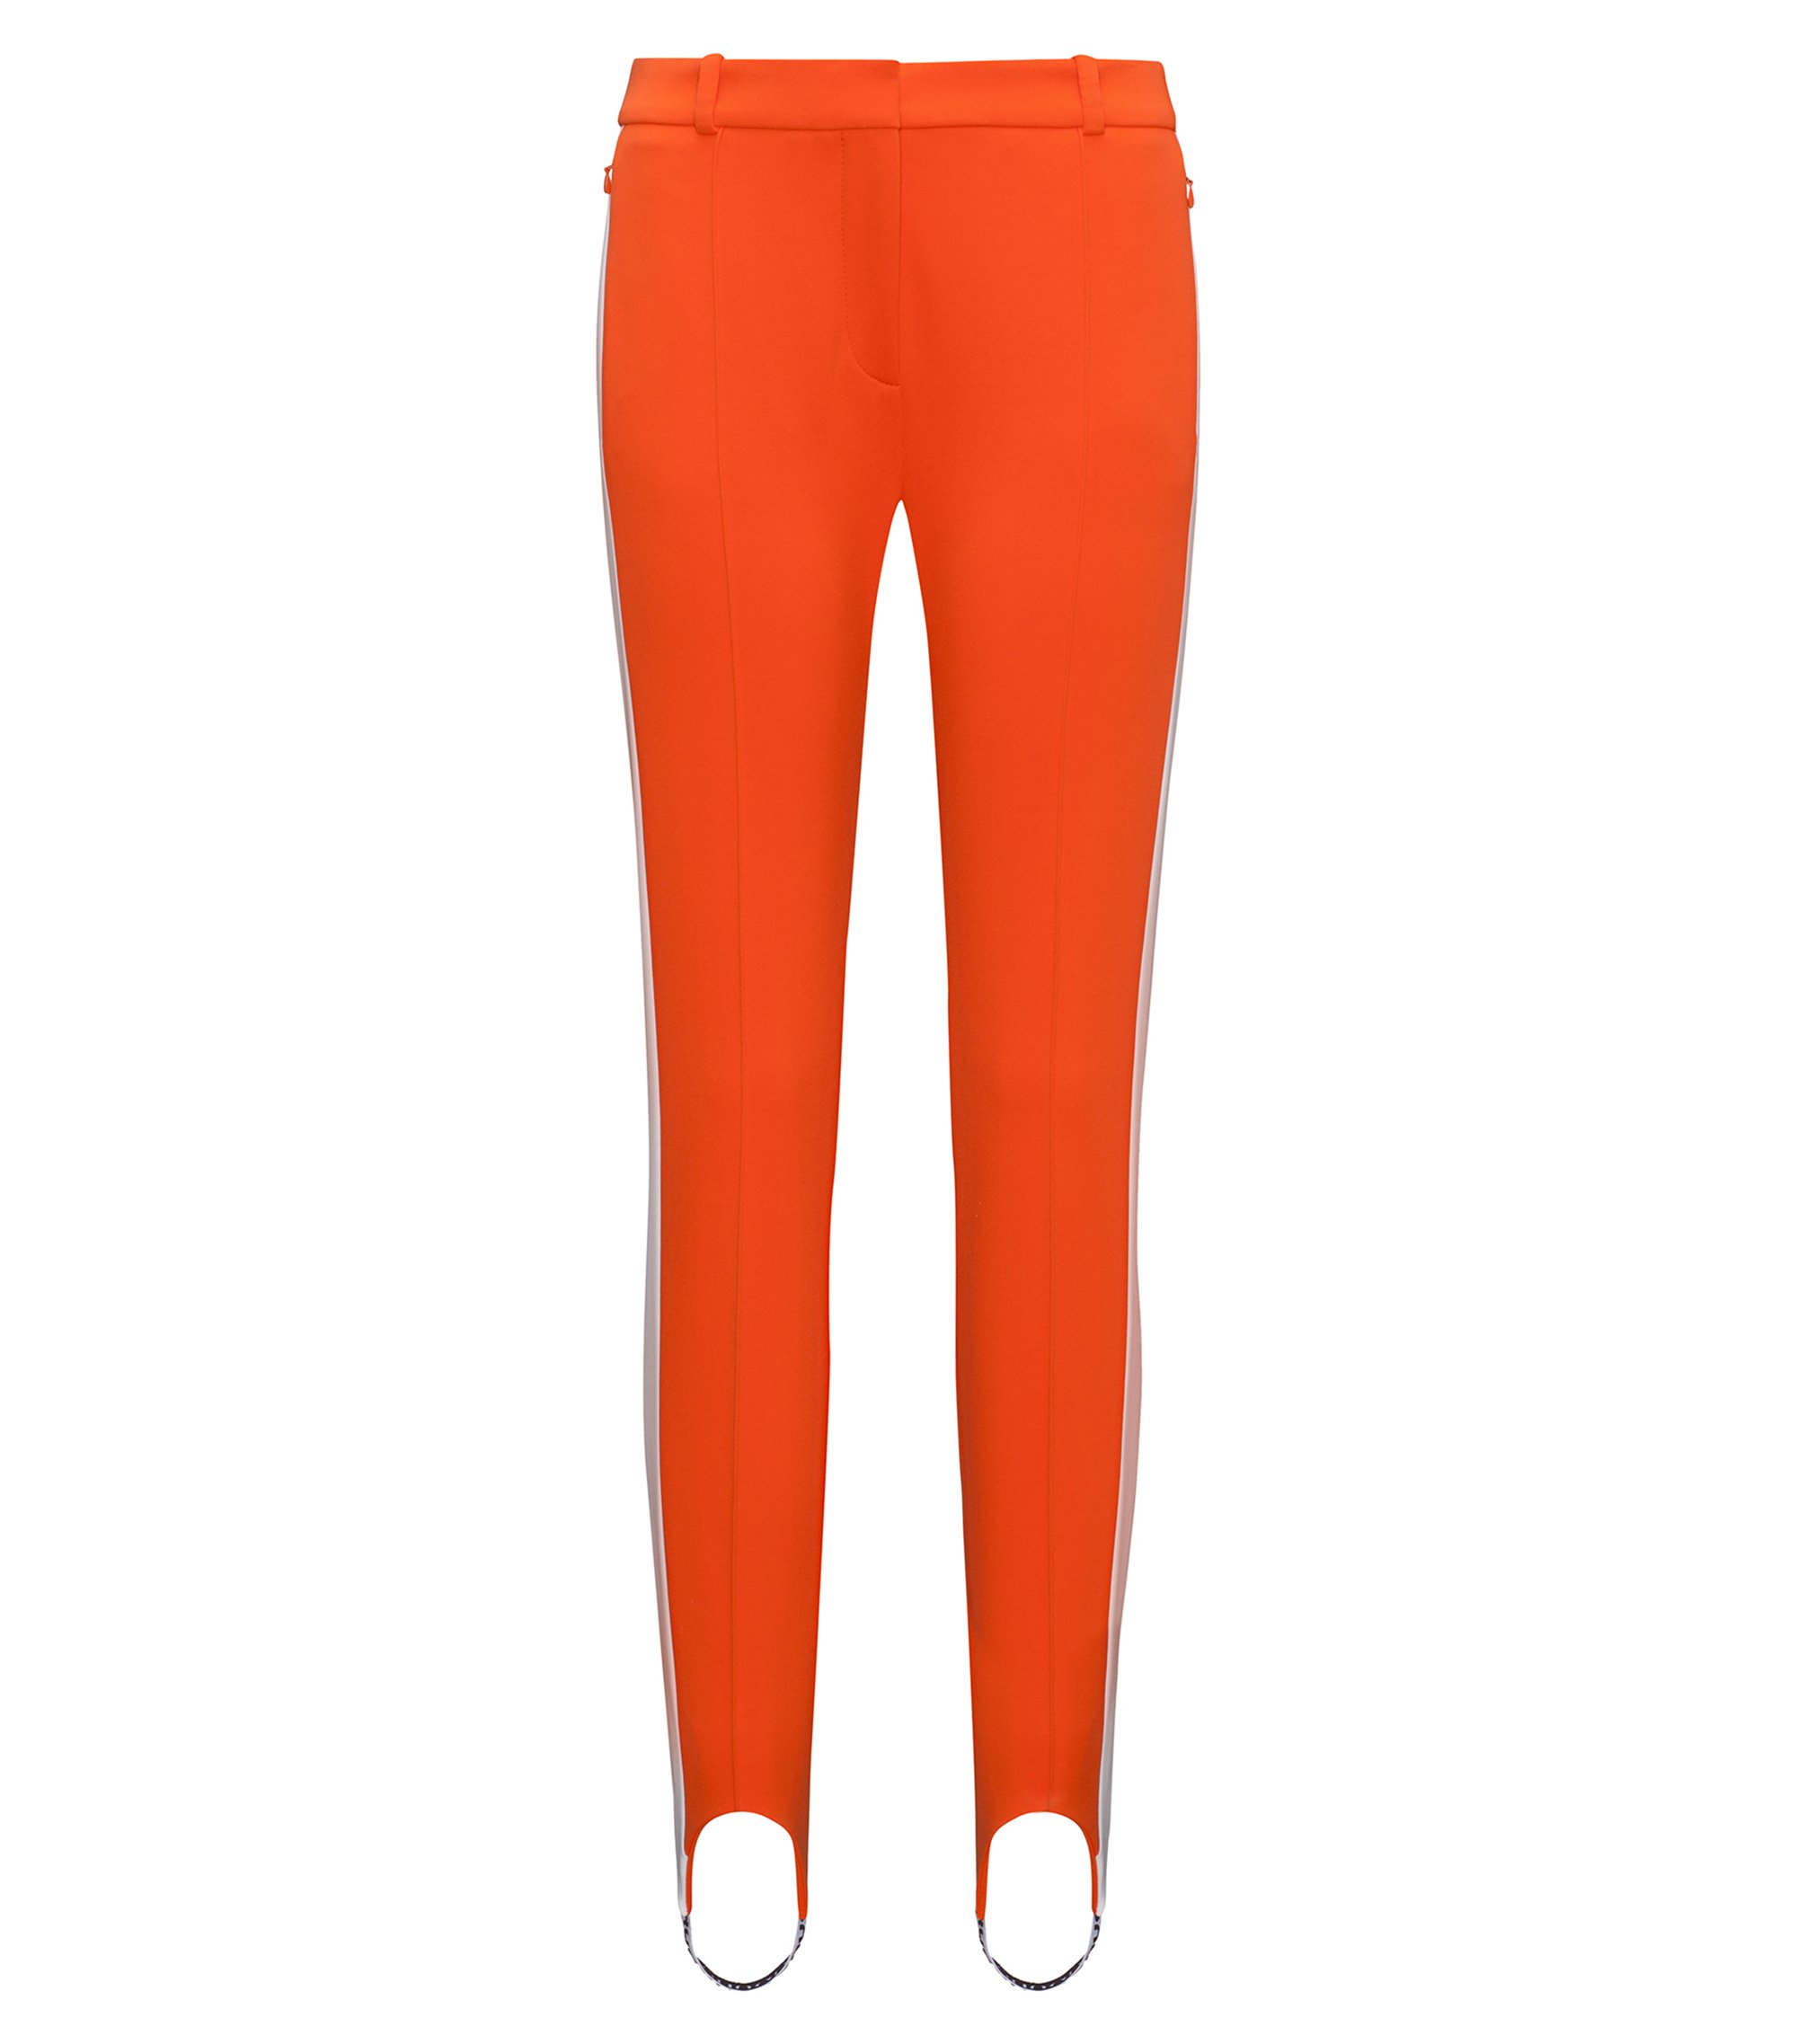 Slim-Fit Steghose aus Stretch-Jersey mit Seitenstreifen, Orange